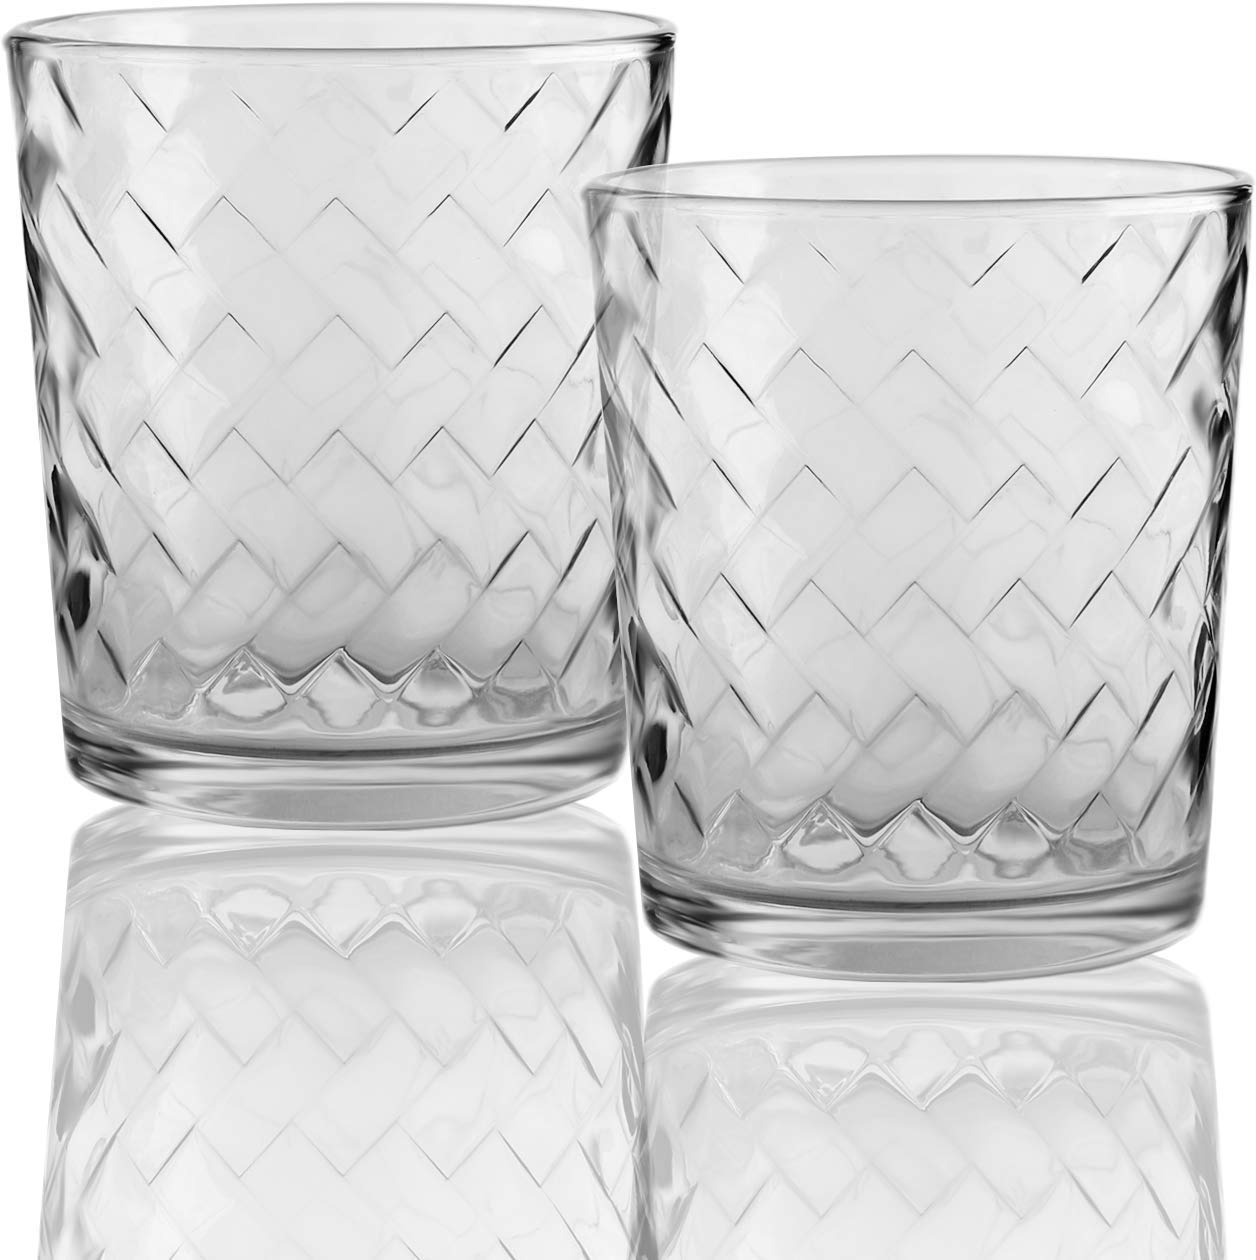 Circleware 40121 Chevron Set of 4 Whiskey Drinking Glasses Glassware for Water, Beer and Bar Liquor Dining Decor Beverage Cups Gifts, 12.5 oz,